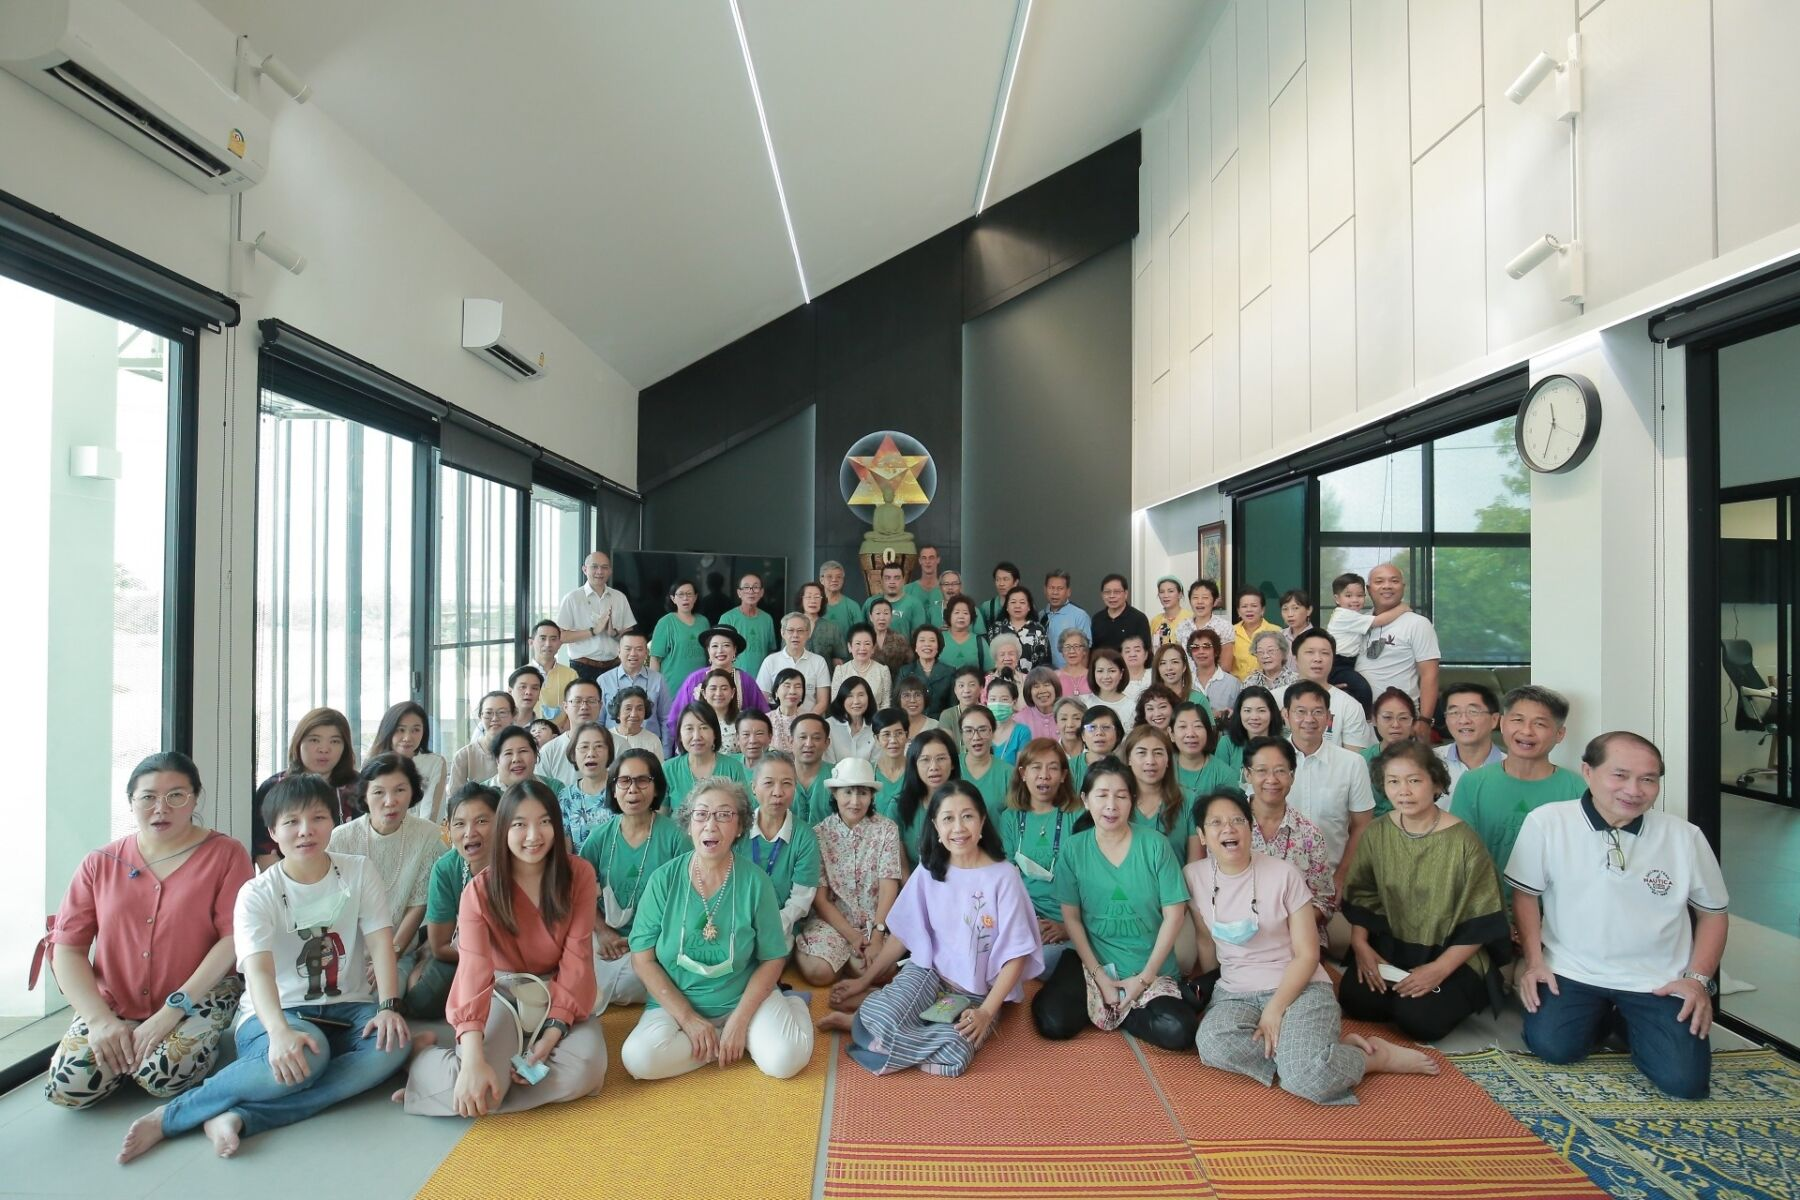 Supporters raise 17 million baht to open Vipassana Mindfulness Centre in Nakhon Pathom | News by Thaiger